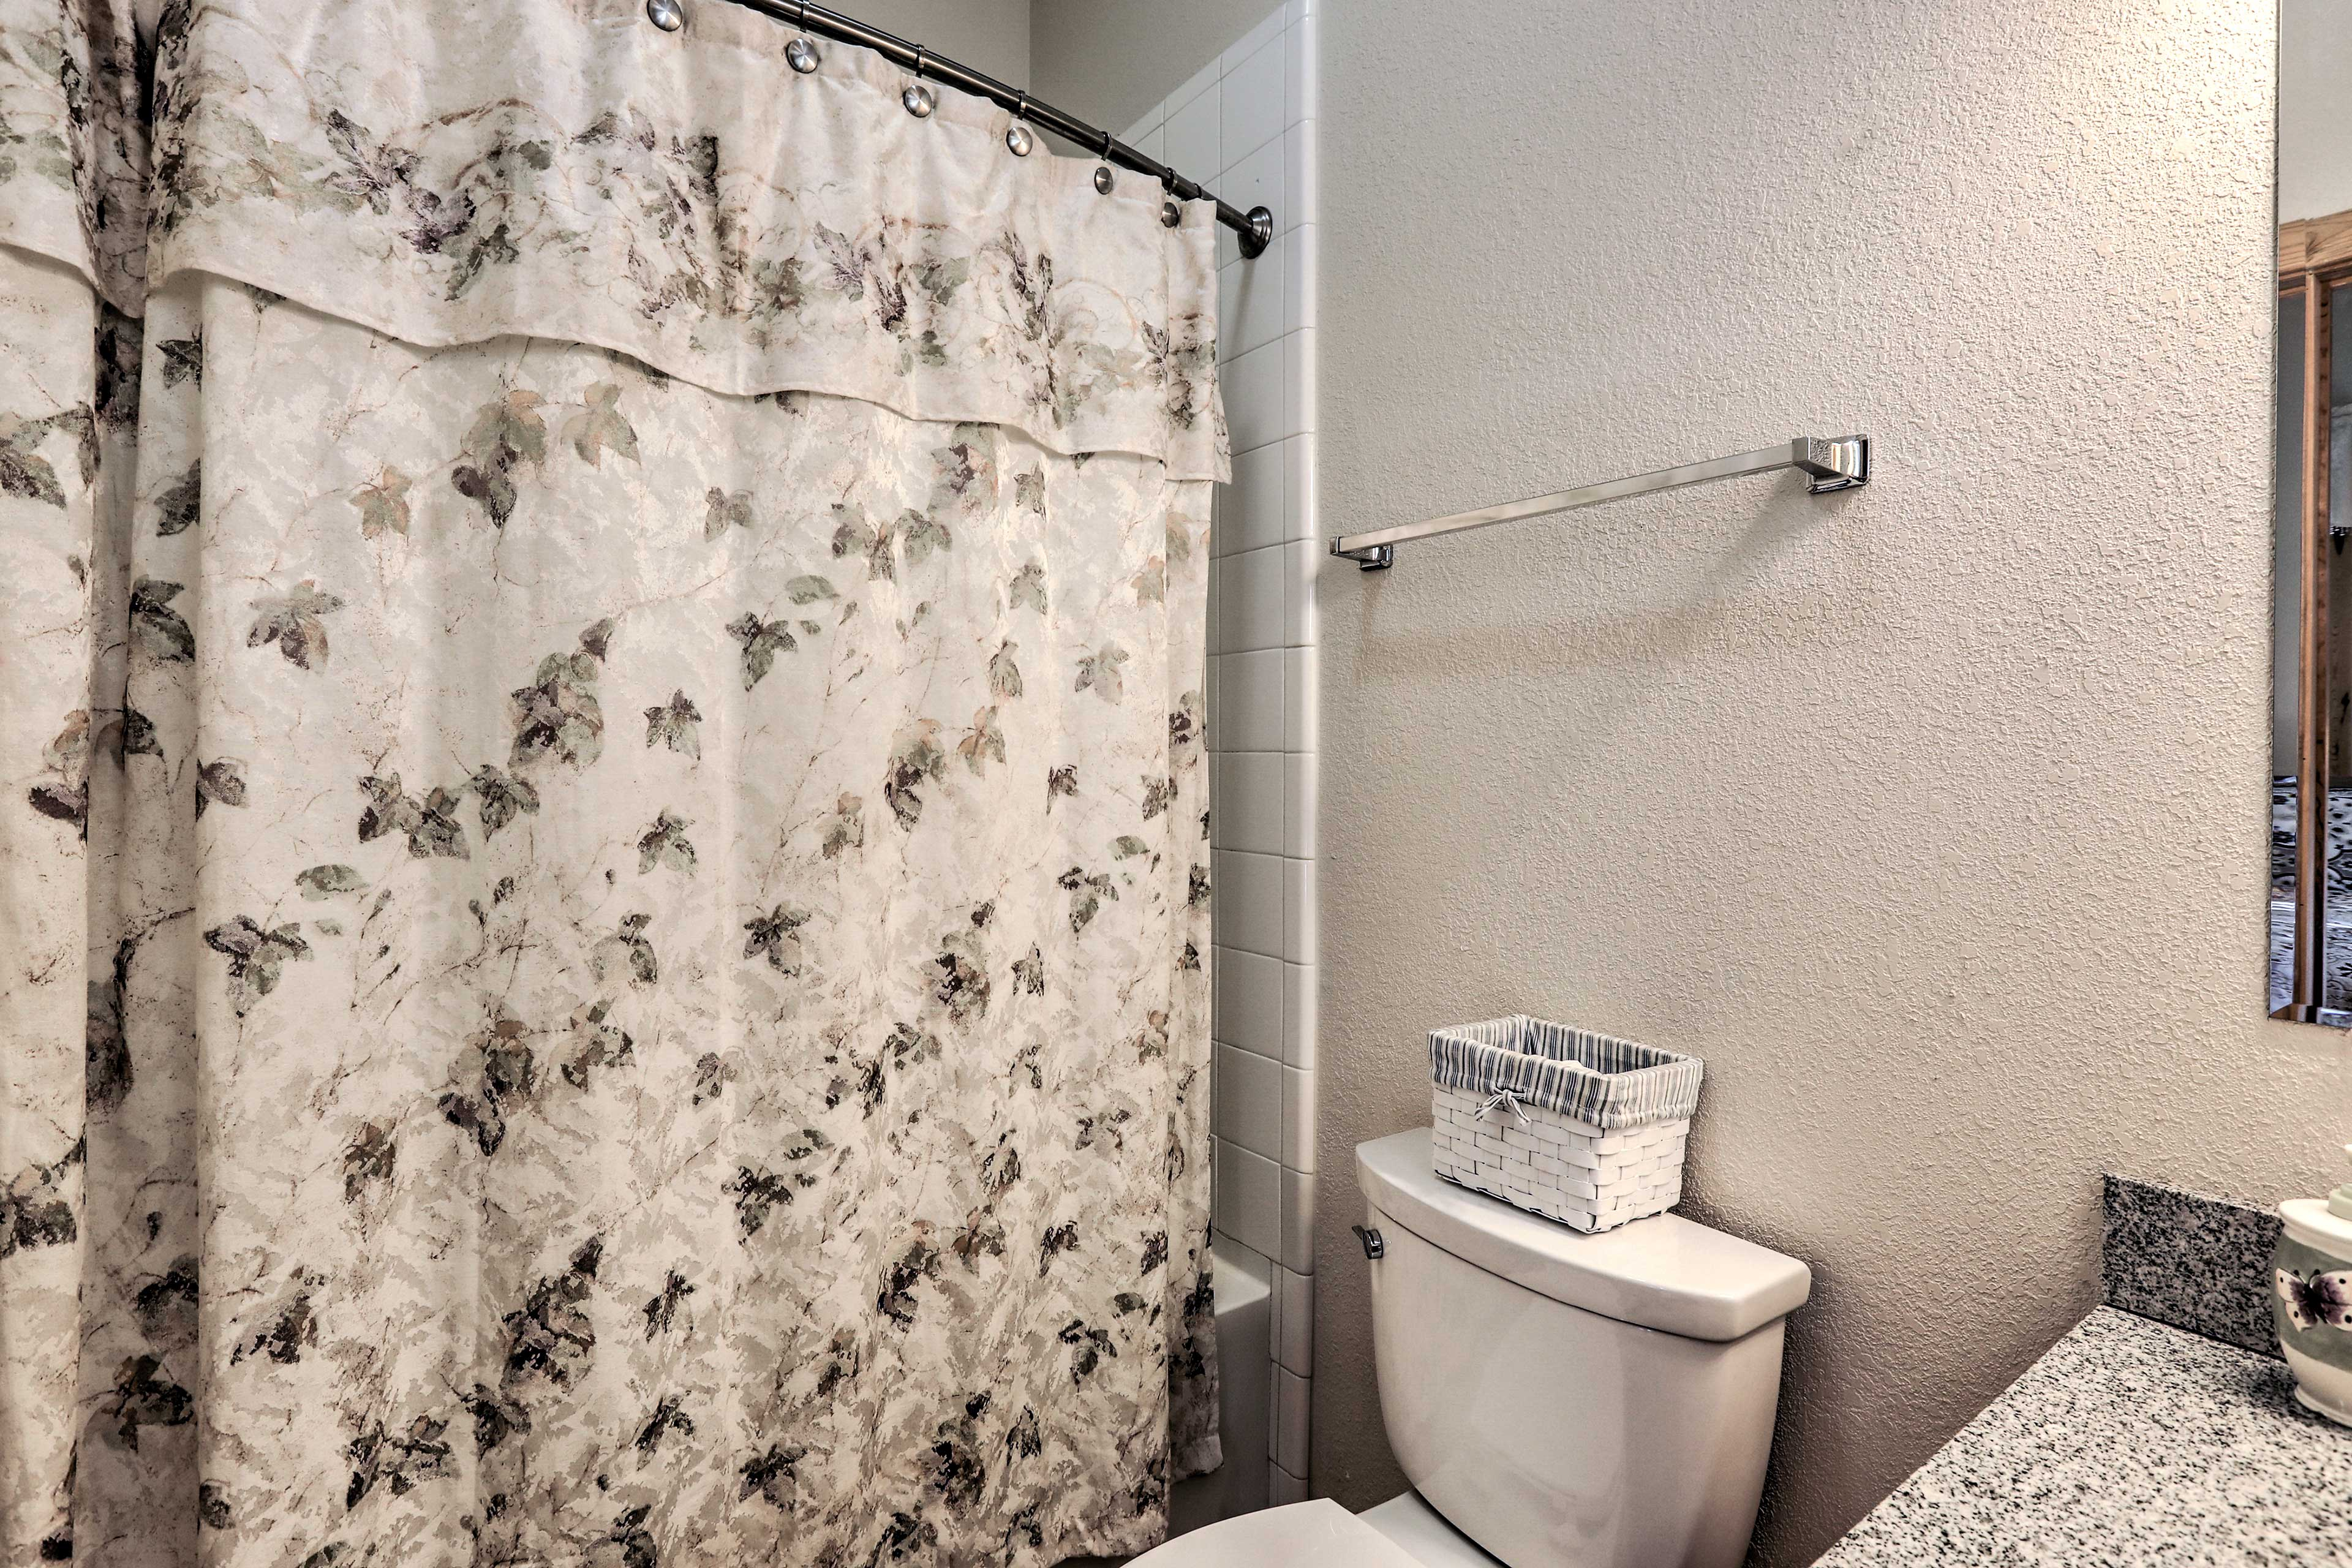 This room also has a shower/tub combo for any bath lovers.